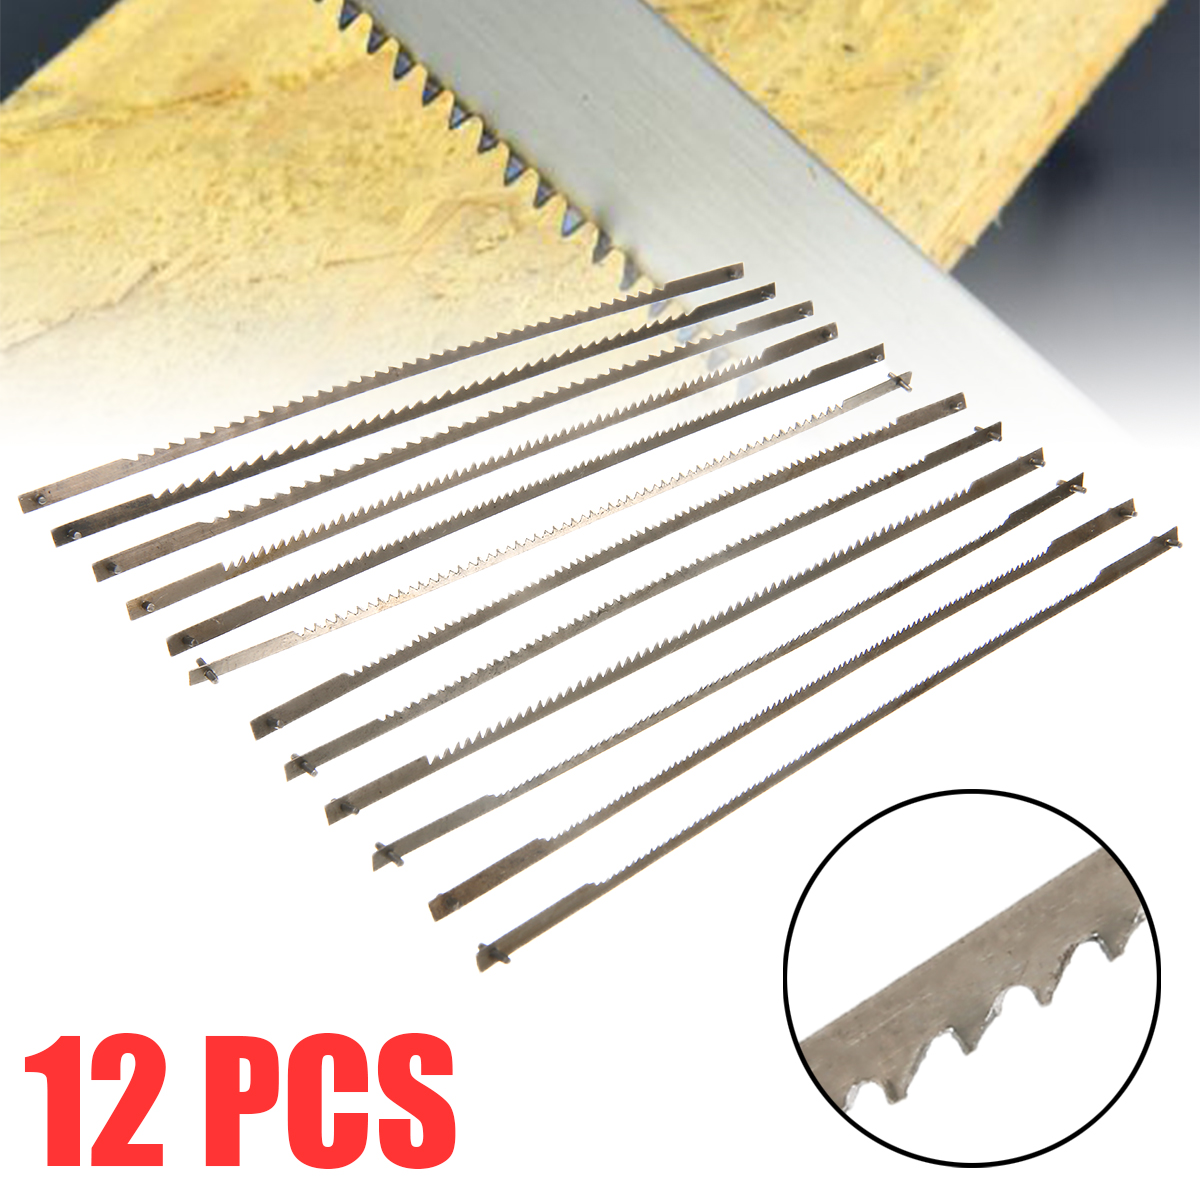 "12pcs 5"" 10/15/18/24 Teeth Pinned Scroll Saw Blades Woodworking Saw Blades Power Tools Accessories"